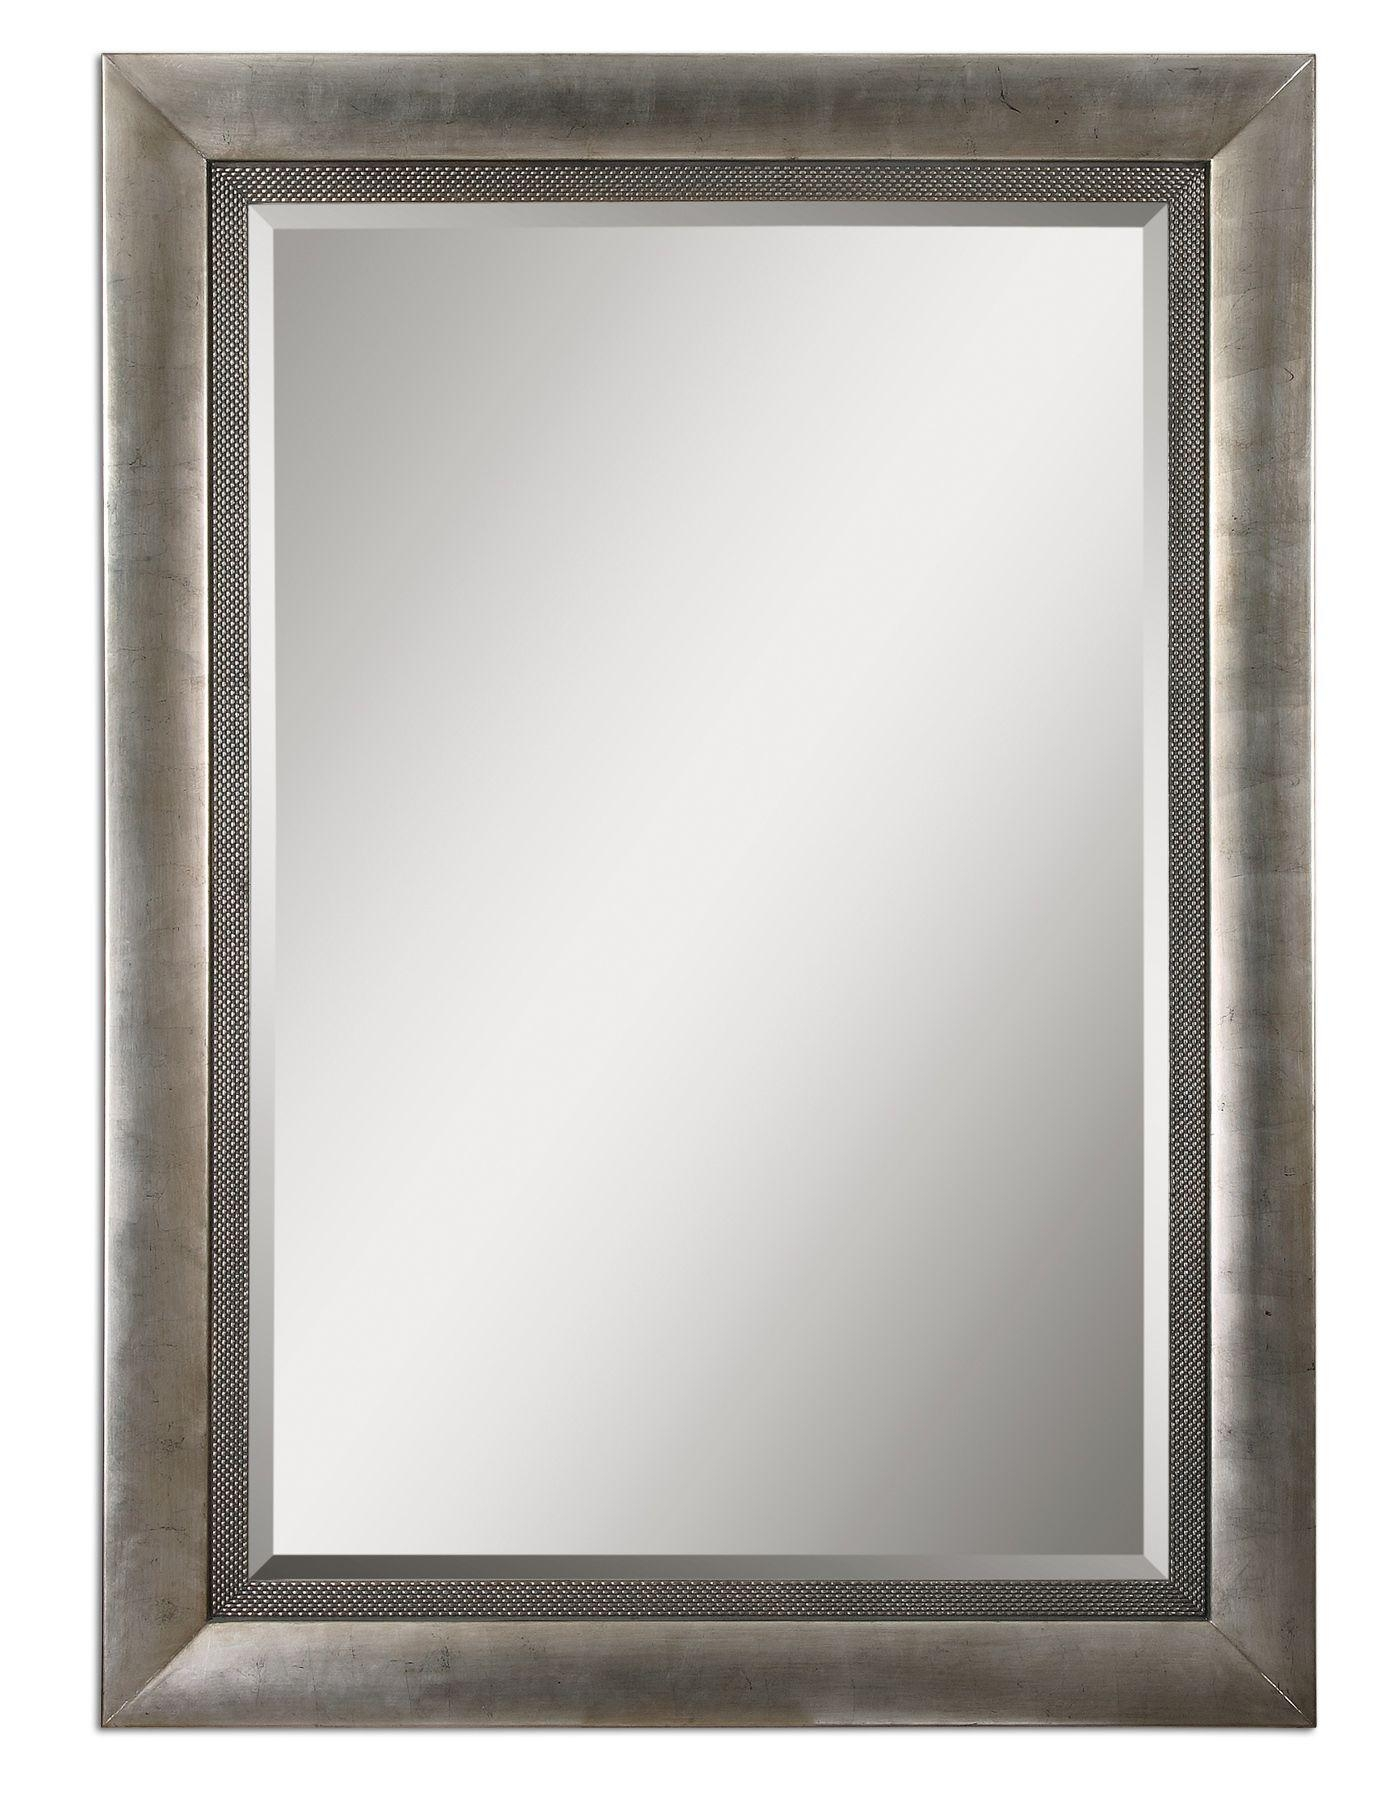 Uttermost Gilford Antique Silver Mirror 14207 For Silver Antique Mirror (Image 19 of 20)